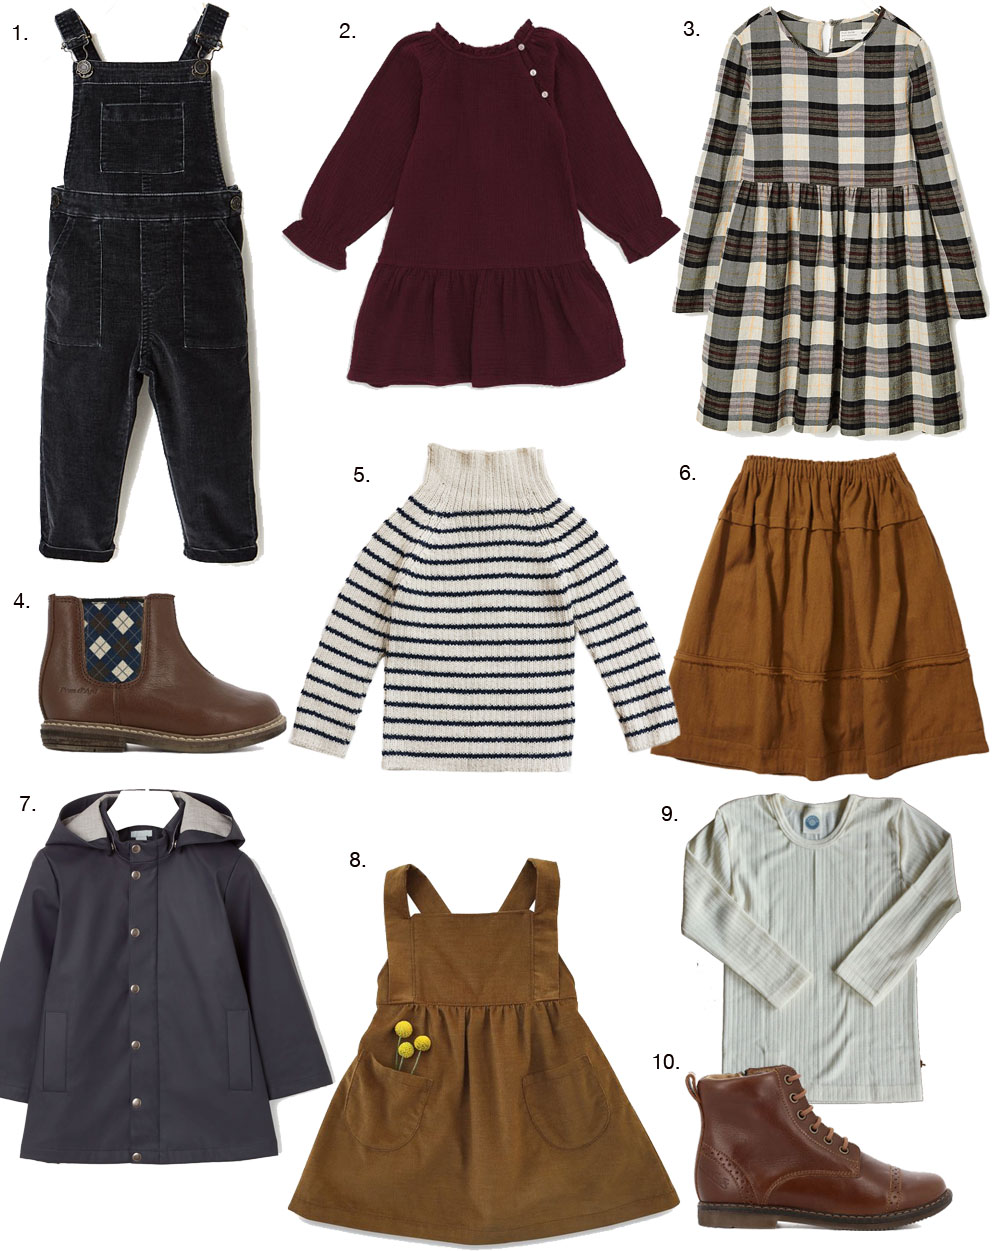 dreaming_of_1_style_mabo_kids_pom_dapi_kids_clothes